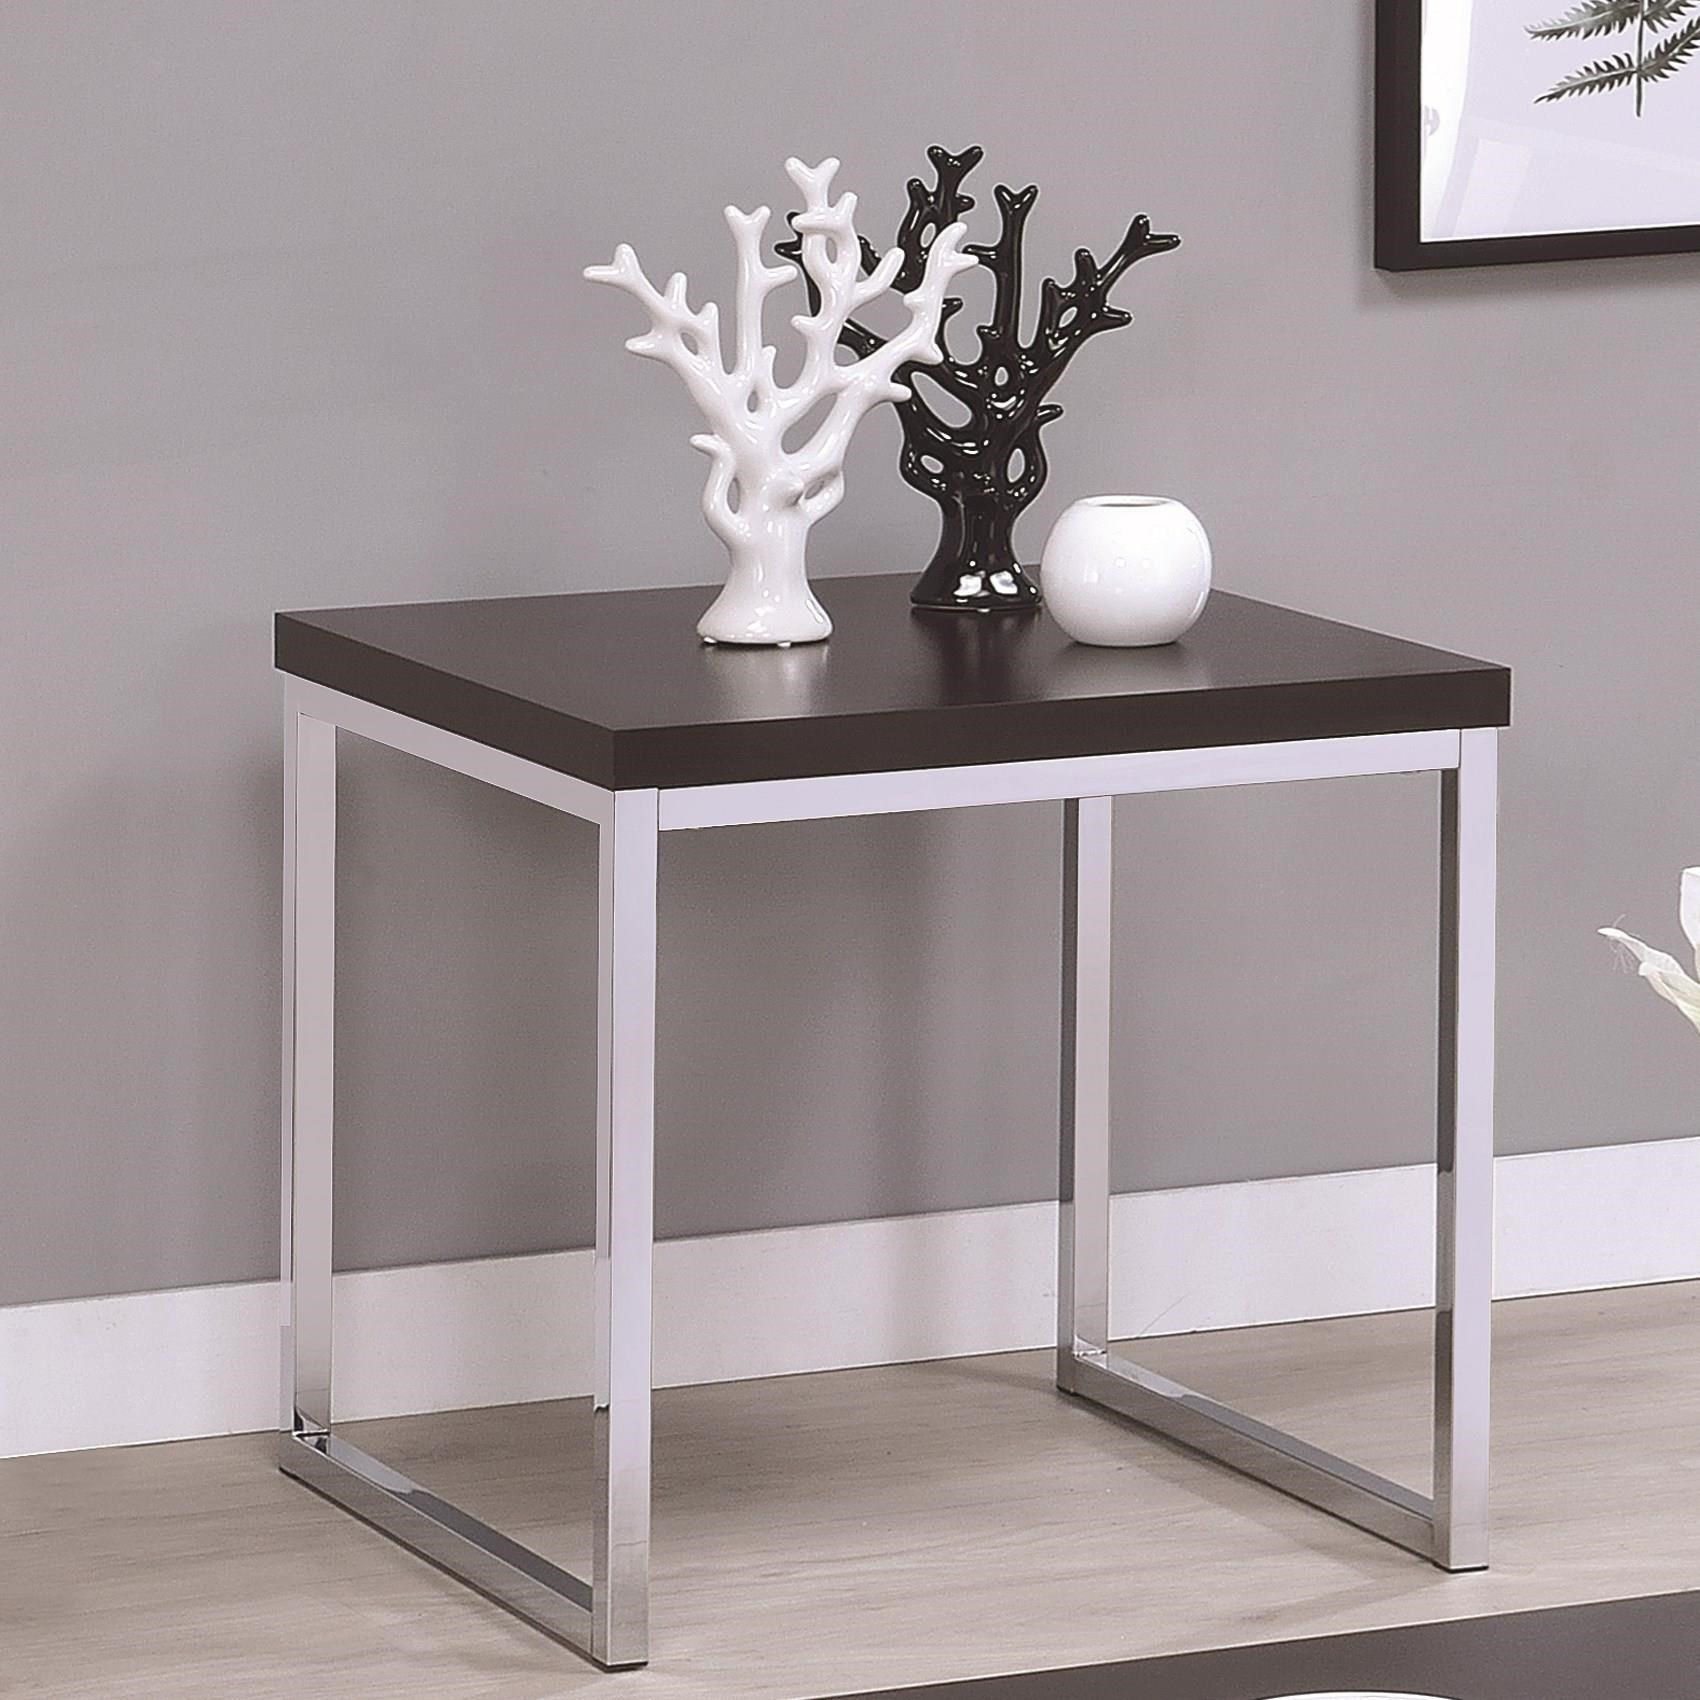 Coaster 72102 End Table - Item Number: 721027